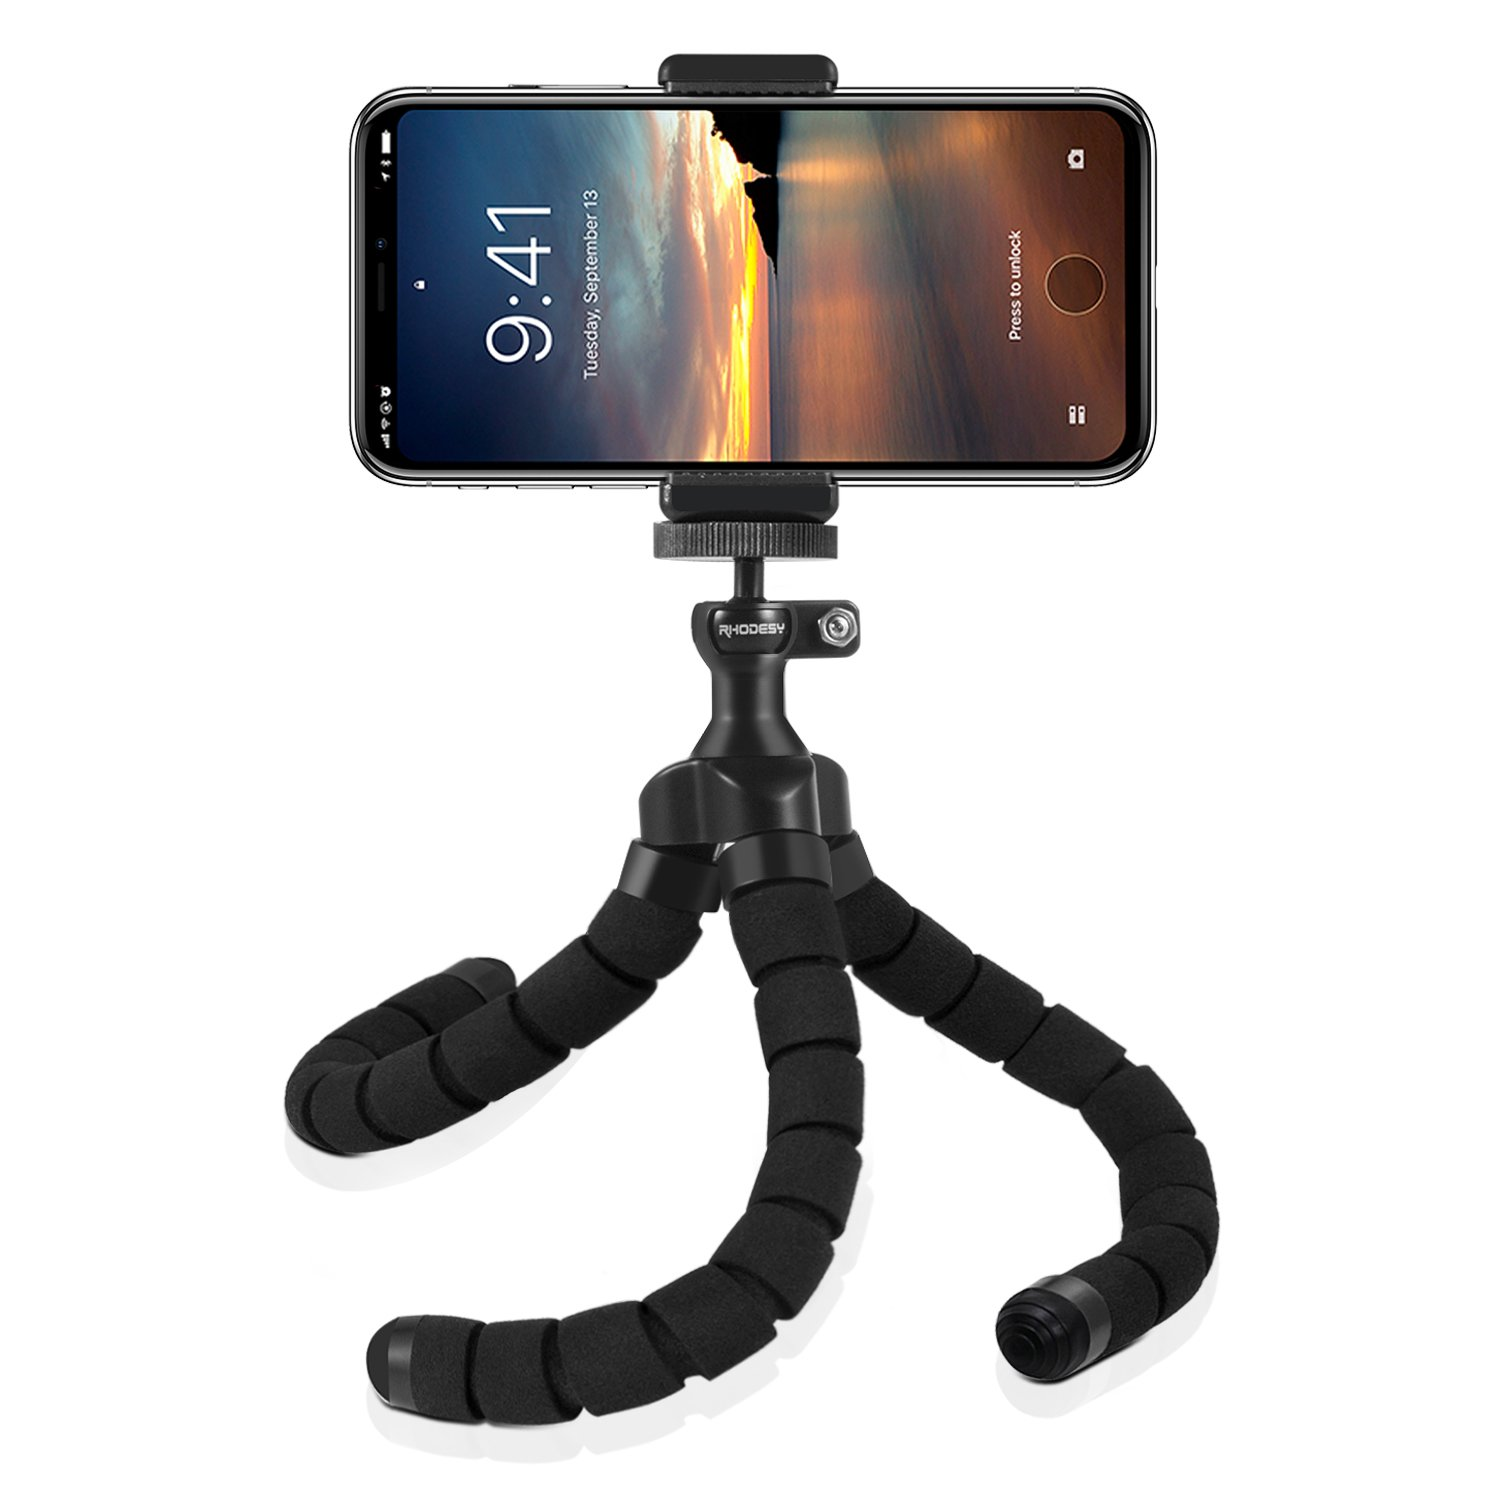 Rhodesy RT-02 Octopus Style Tripod Stand Holder with Bluetooth Remote for Camera, Any Smartphone with Clip Rhodesy Tech